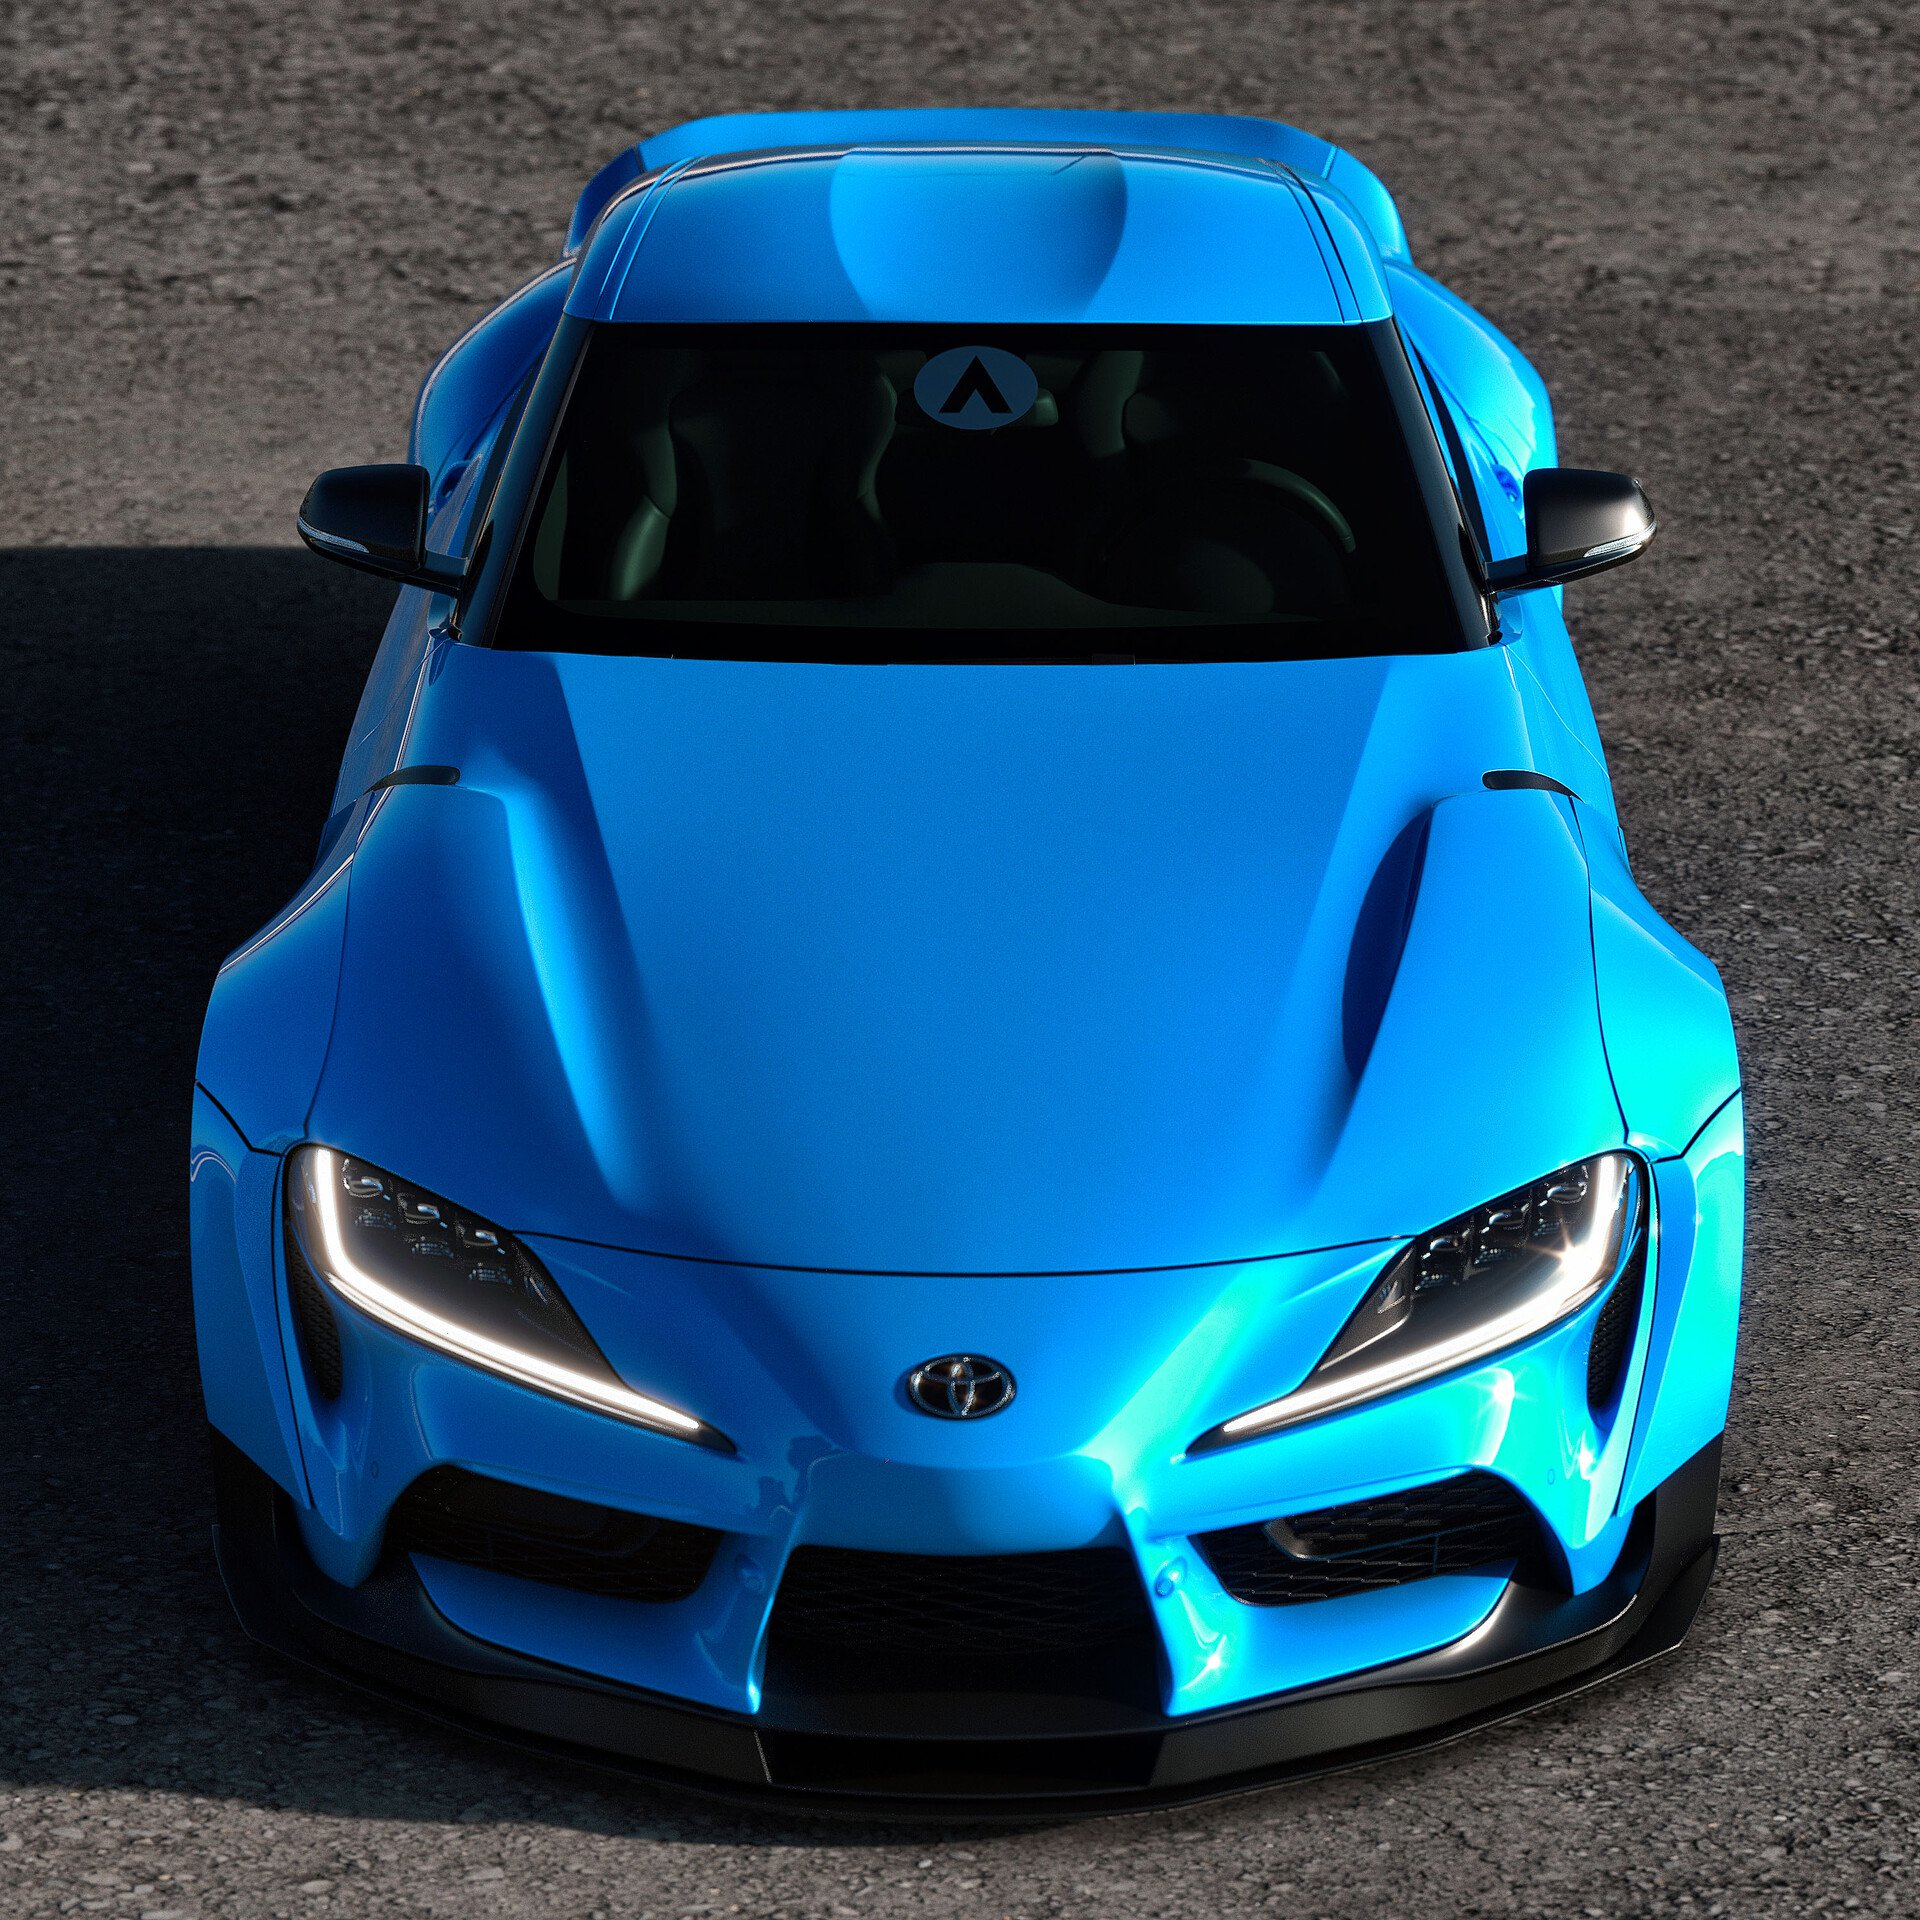 Toyota-Supra-Widebody-kit-renderings-6